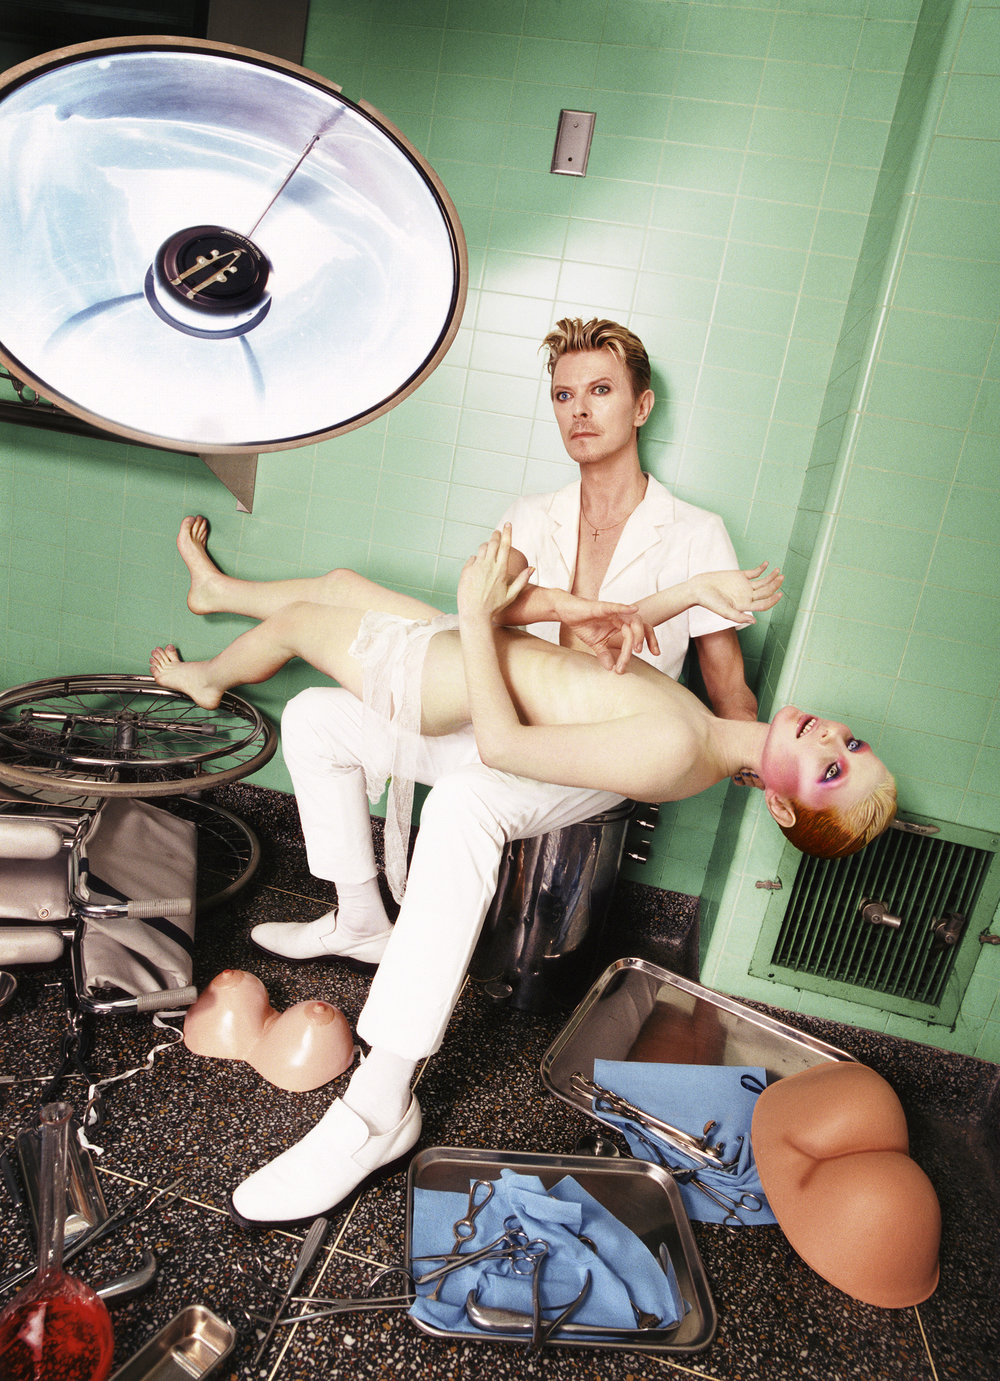 """""""David Bowie: Self Preservation, 1995"""". David LaChapelle. © David LaChapelle / Courtesy Staley-Wise Gallery, New York"""